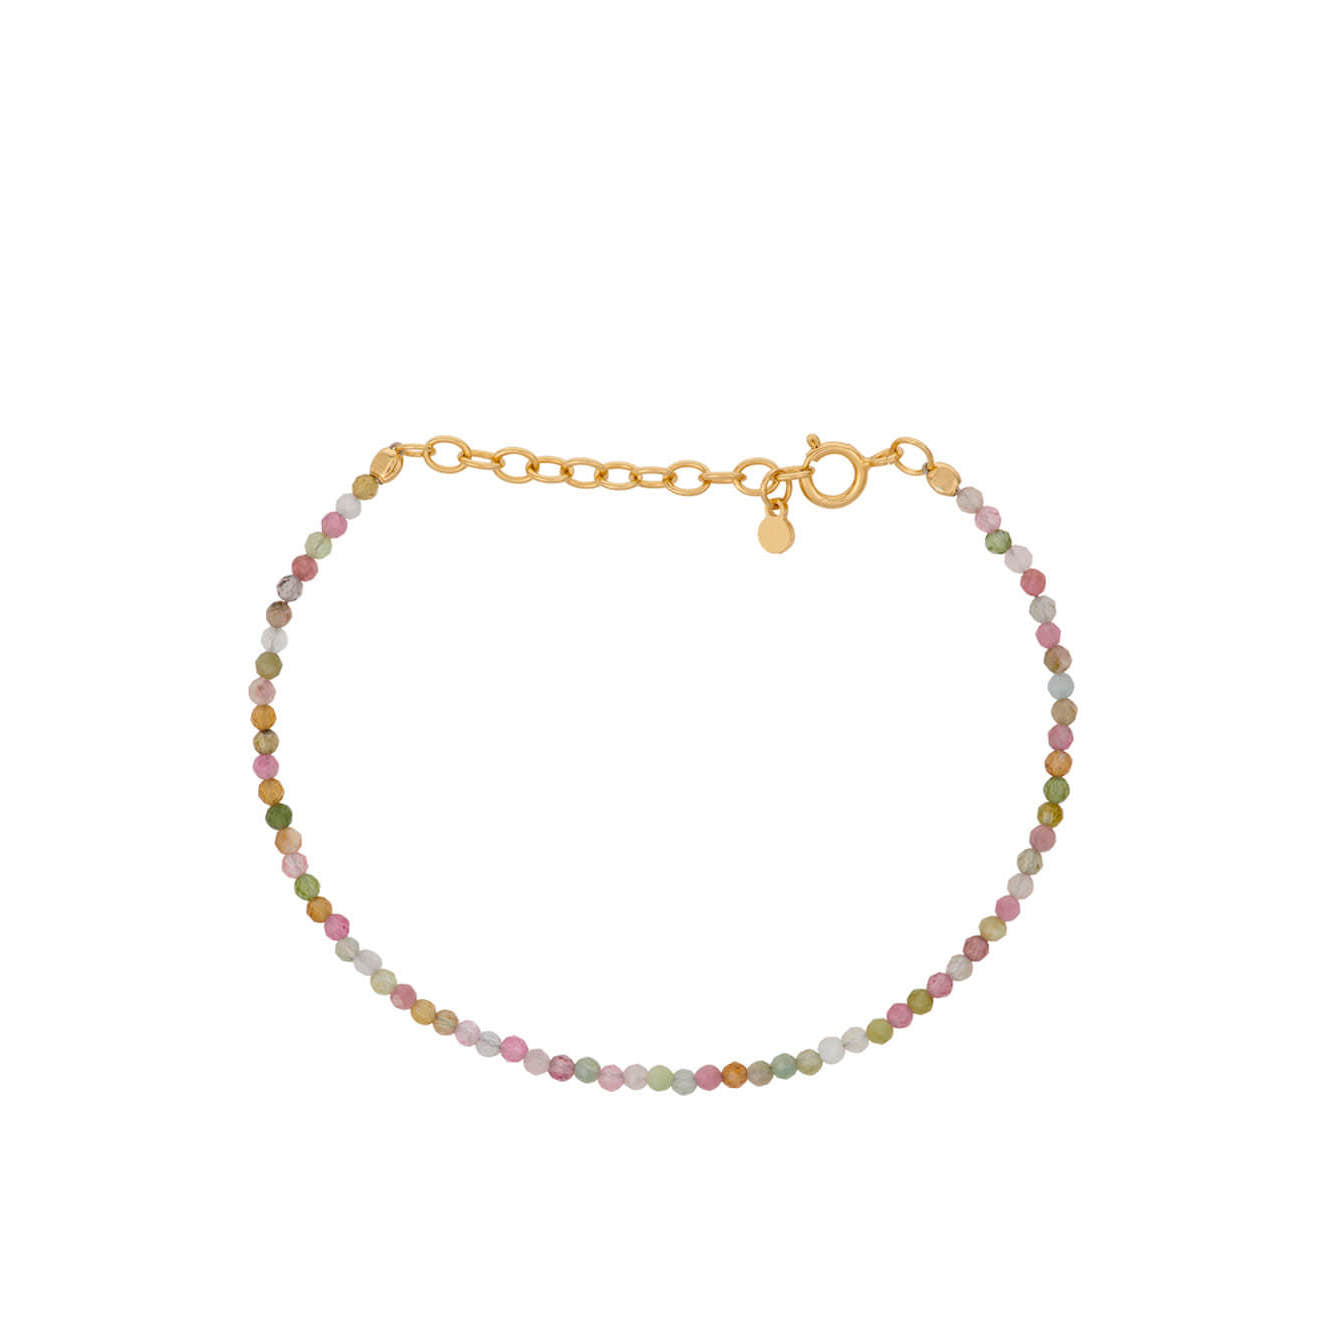 Pernille Corydon Jewellery - Light Rainbow Armband - INGAR